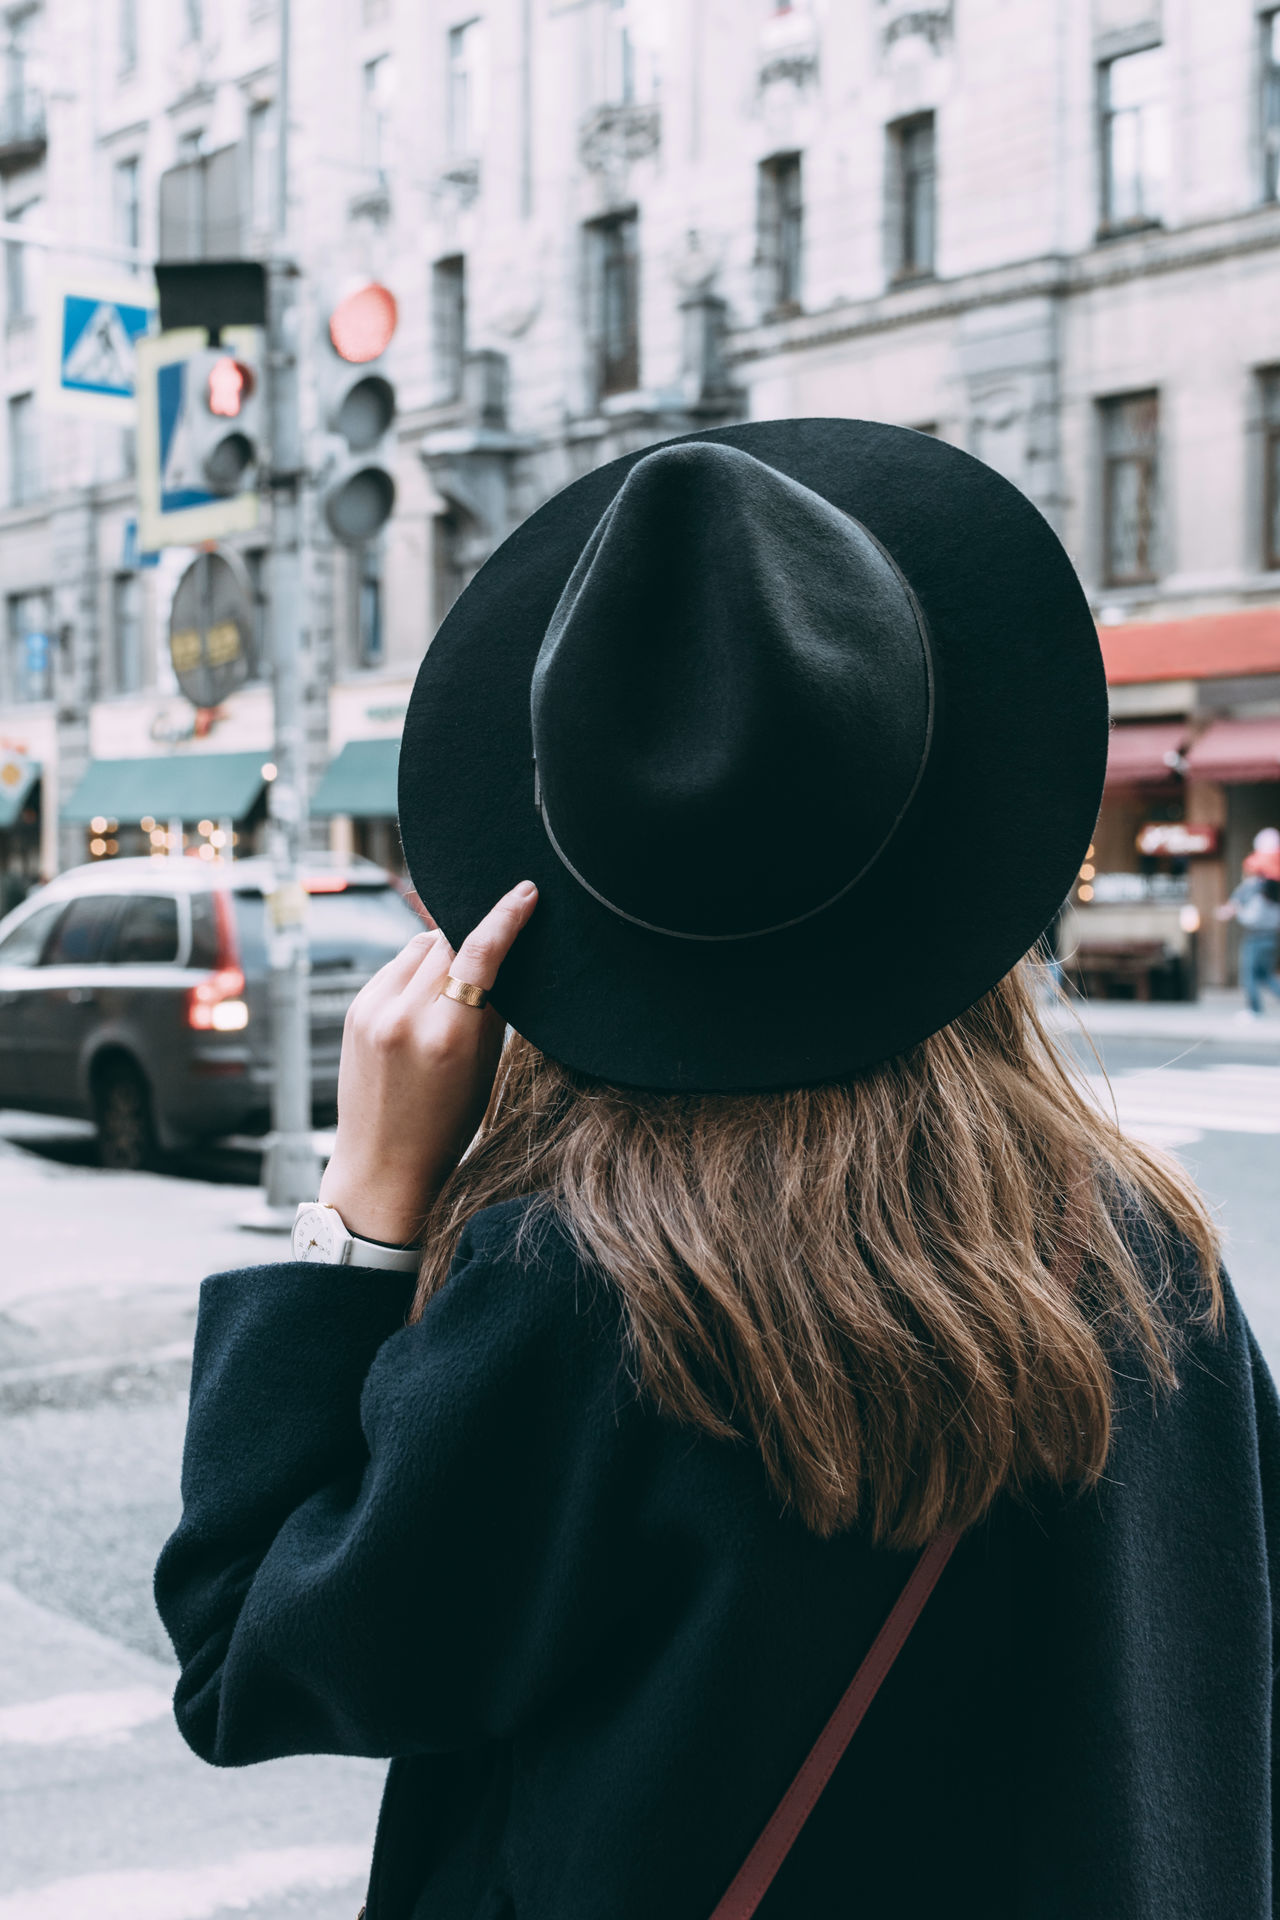 Black Hair Casual Clothing City City Life City Life Hat Holding Lifestyles Long Hair Modern One Woman Only Outdoors People And Places Person Rear View Street Unrecognizable Person Urban Walk Woman